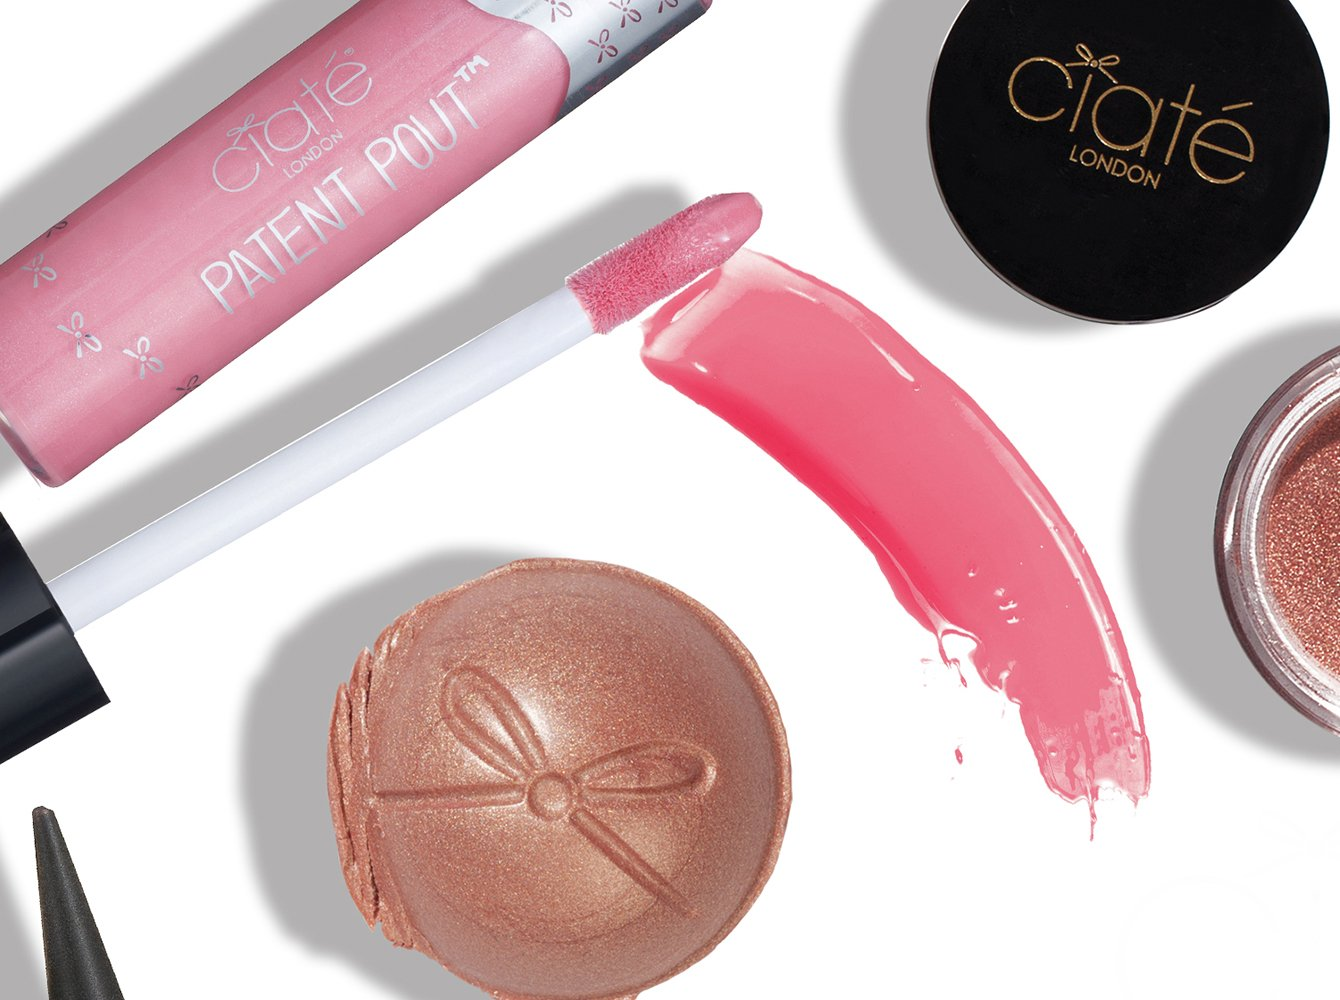 Ciate London Make-up and Nail Care